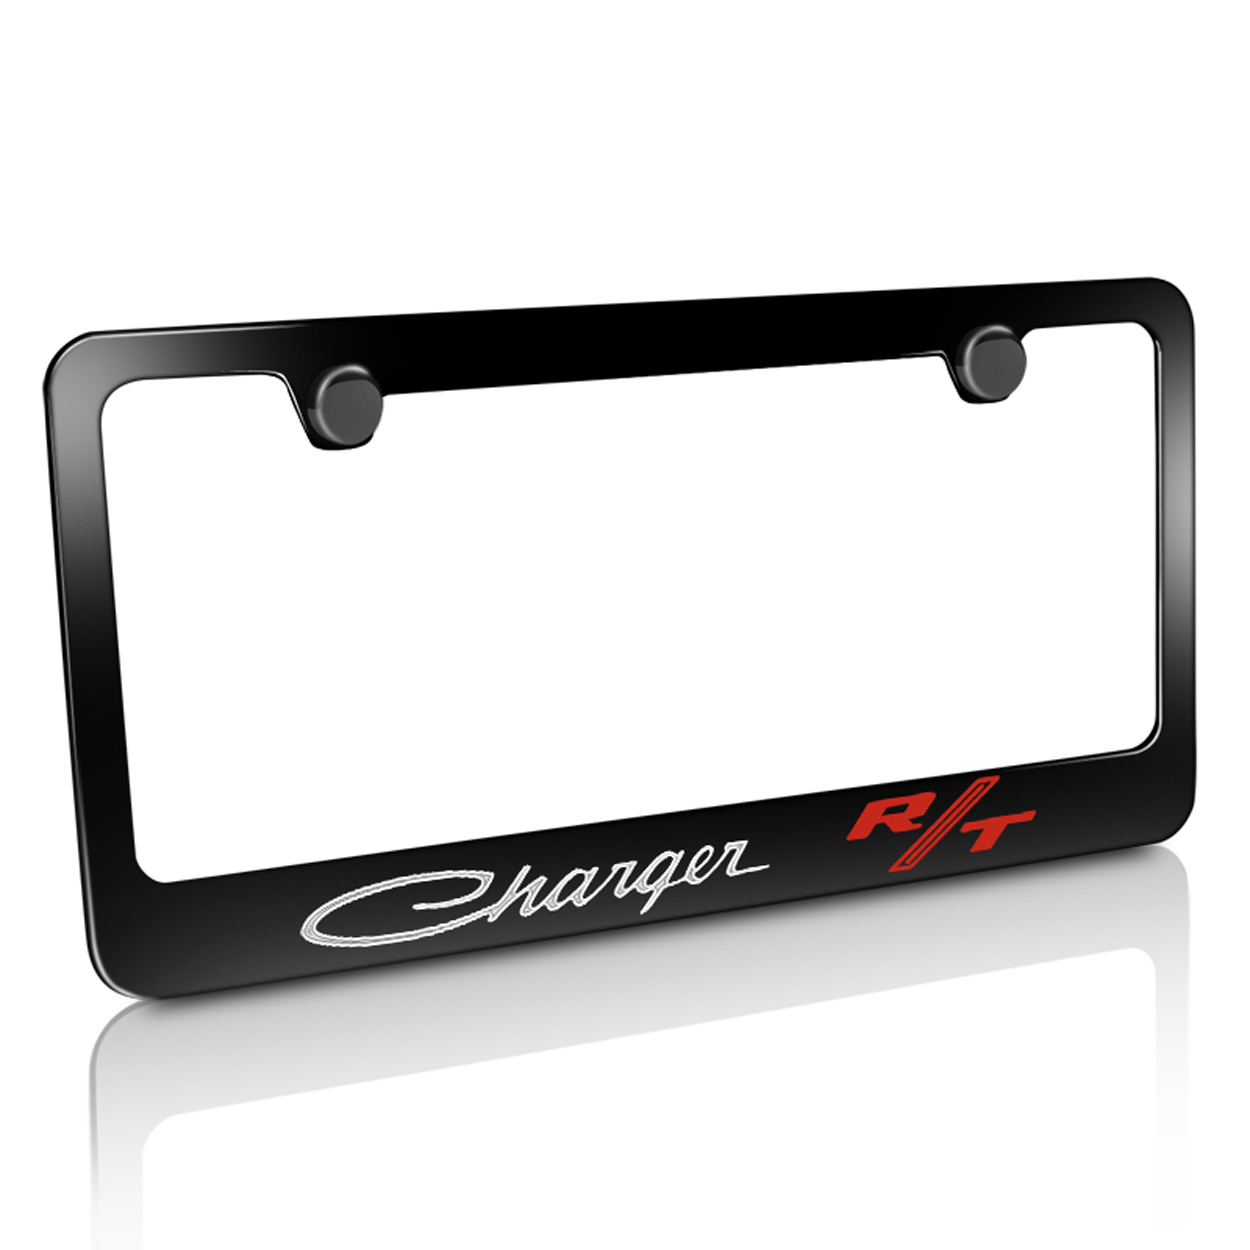 Dodge Charger RT Classic Black Metal License Plate Frame